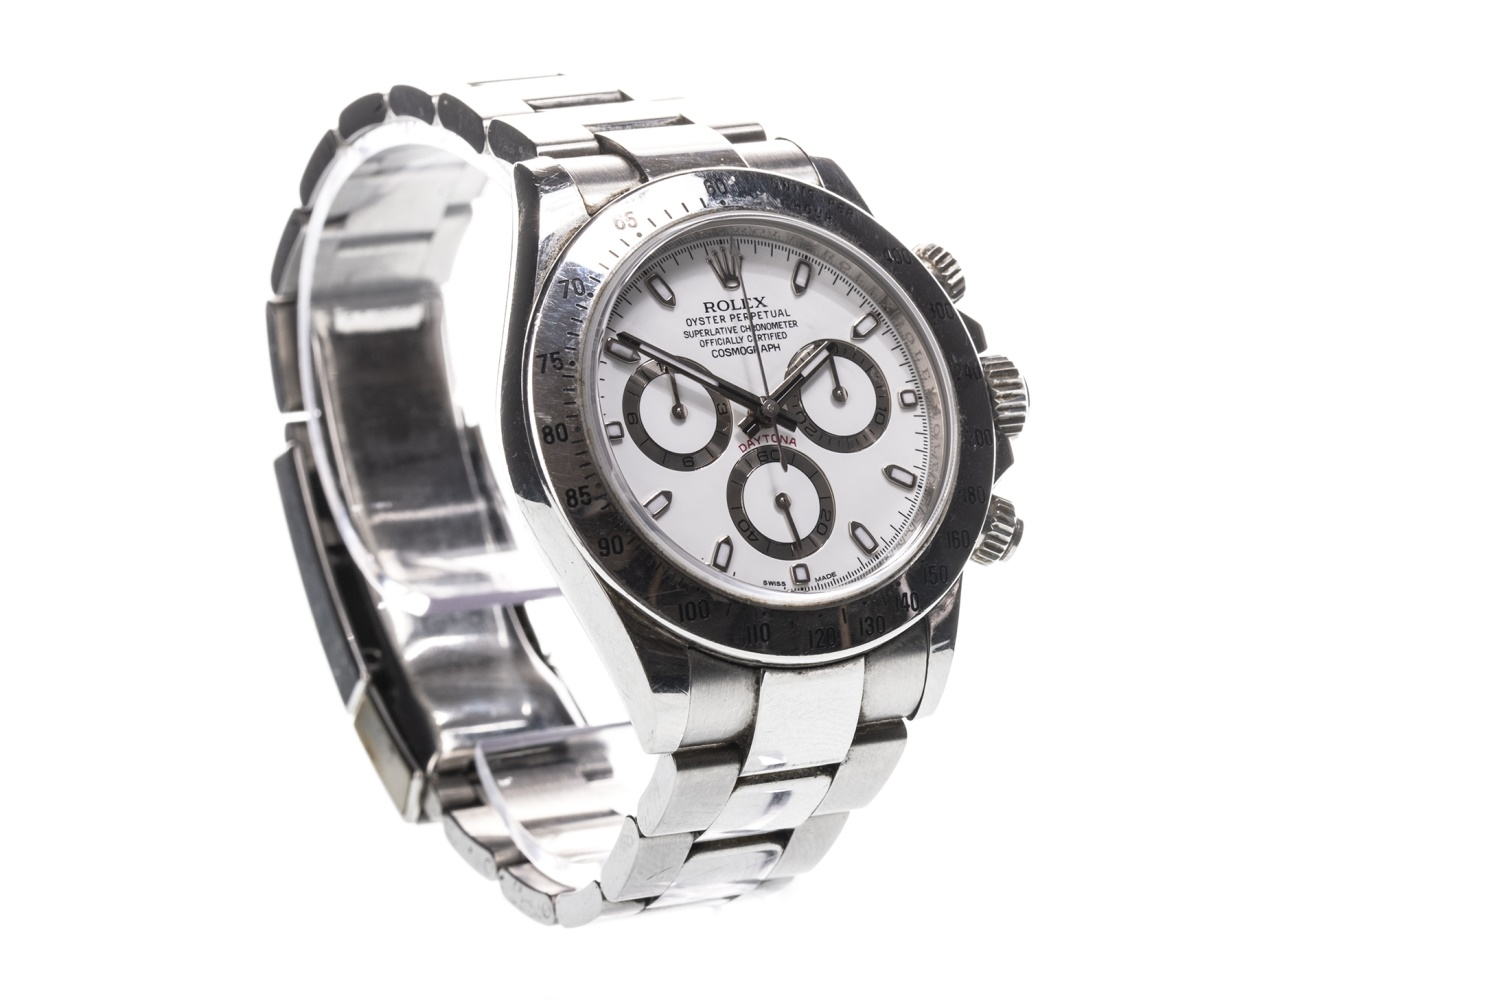 Lot 858 - A GENTLEMAN'S ROLEX OYSTER PERPETUAL COSMOGRAPH DAYTONA STAINLESS STEEL AUTOMATIC WRIST WATCH